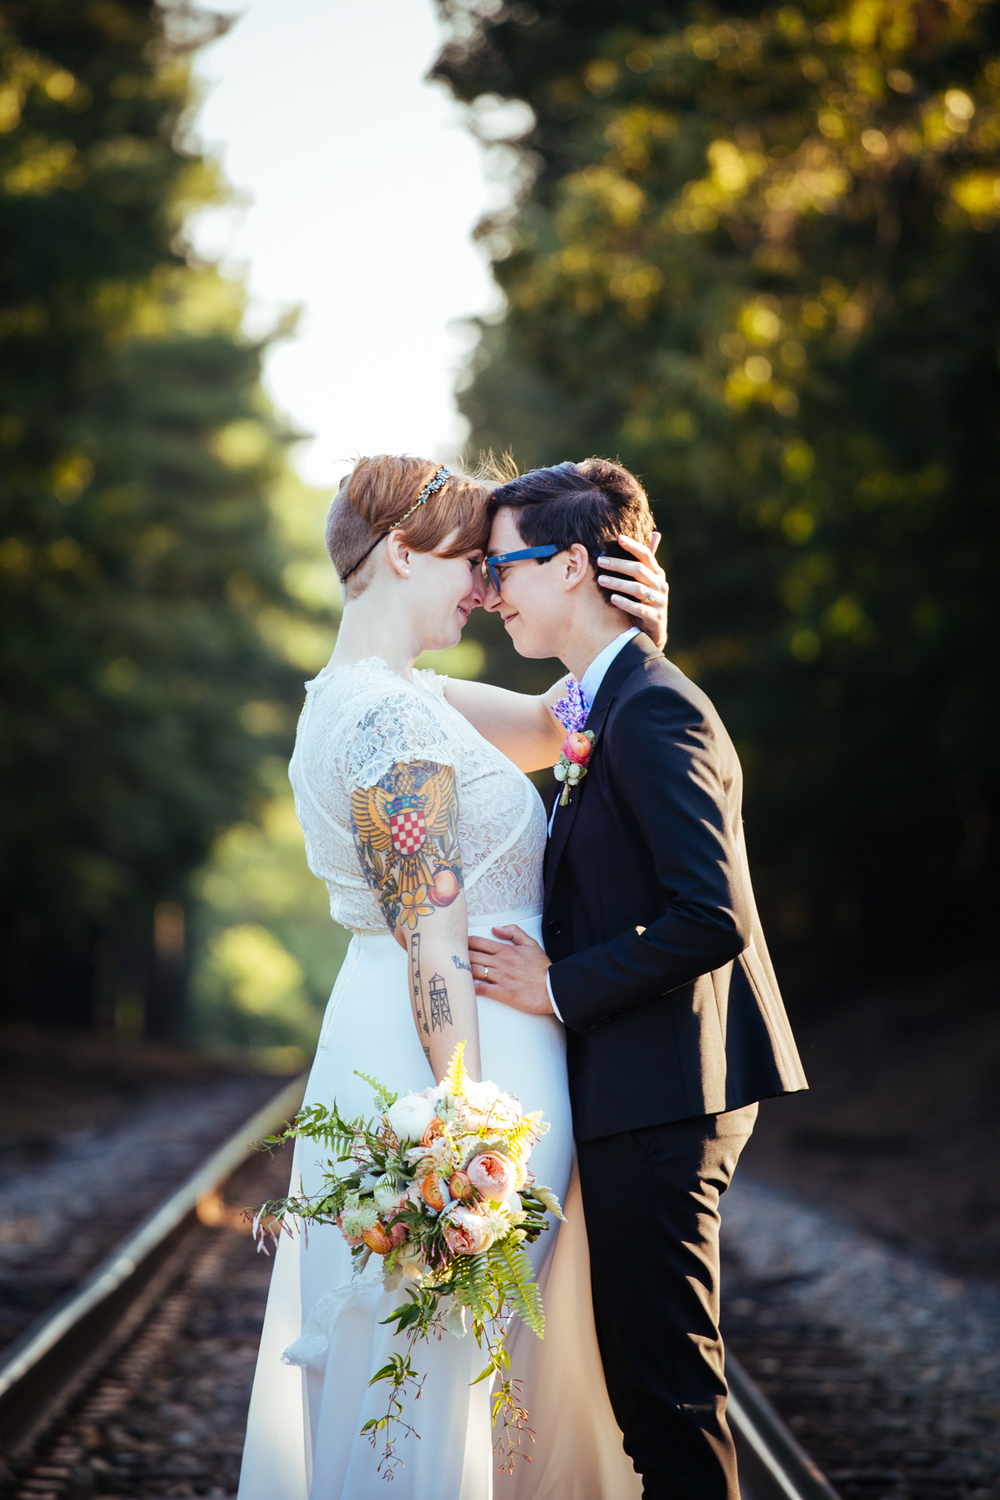 A Lovely Photo Wedding Photography embrace on train tracks